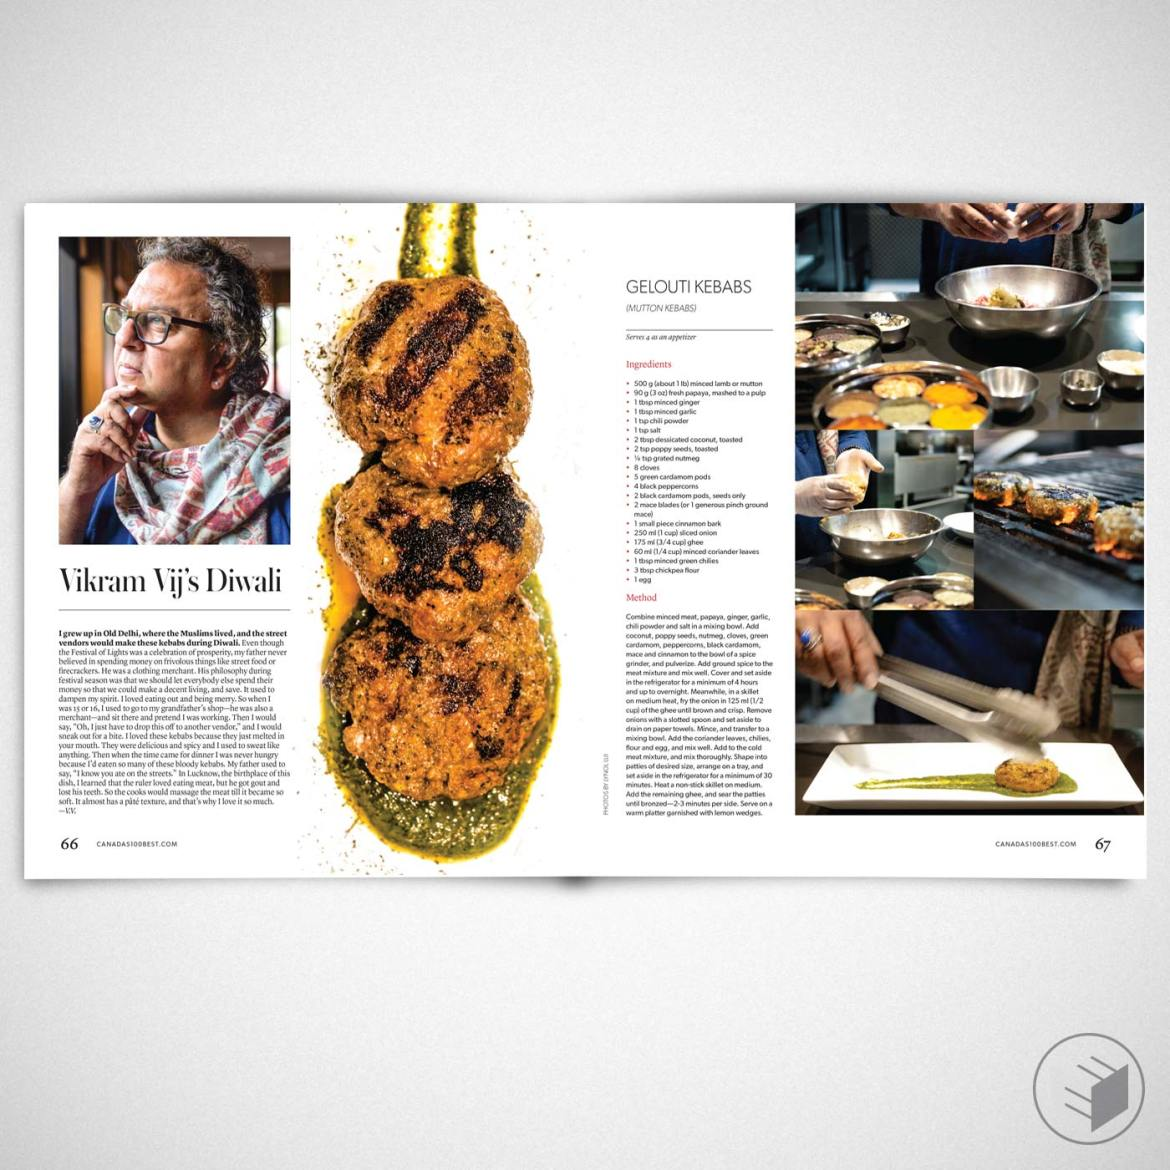 CANADA'S 100 BEST: THE COOKING ISSUE FEATURE